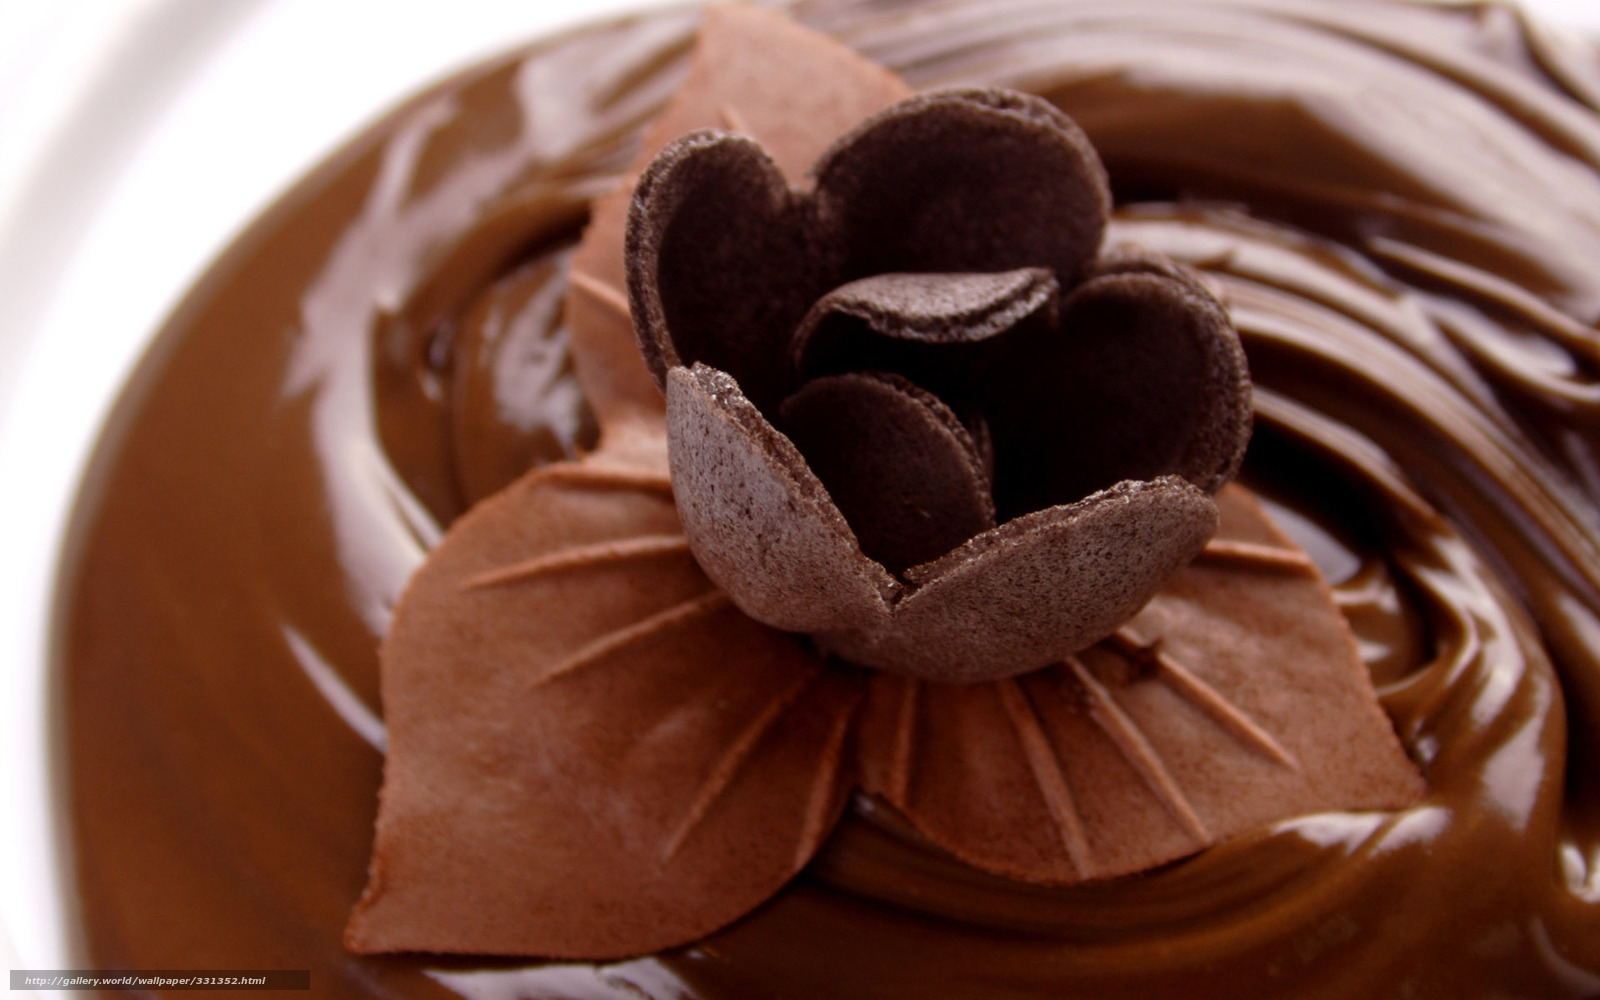 Download wallpaper food sweet the chocolate chocolate flower brown backgr